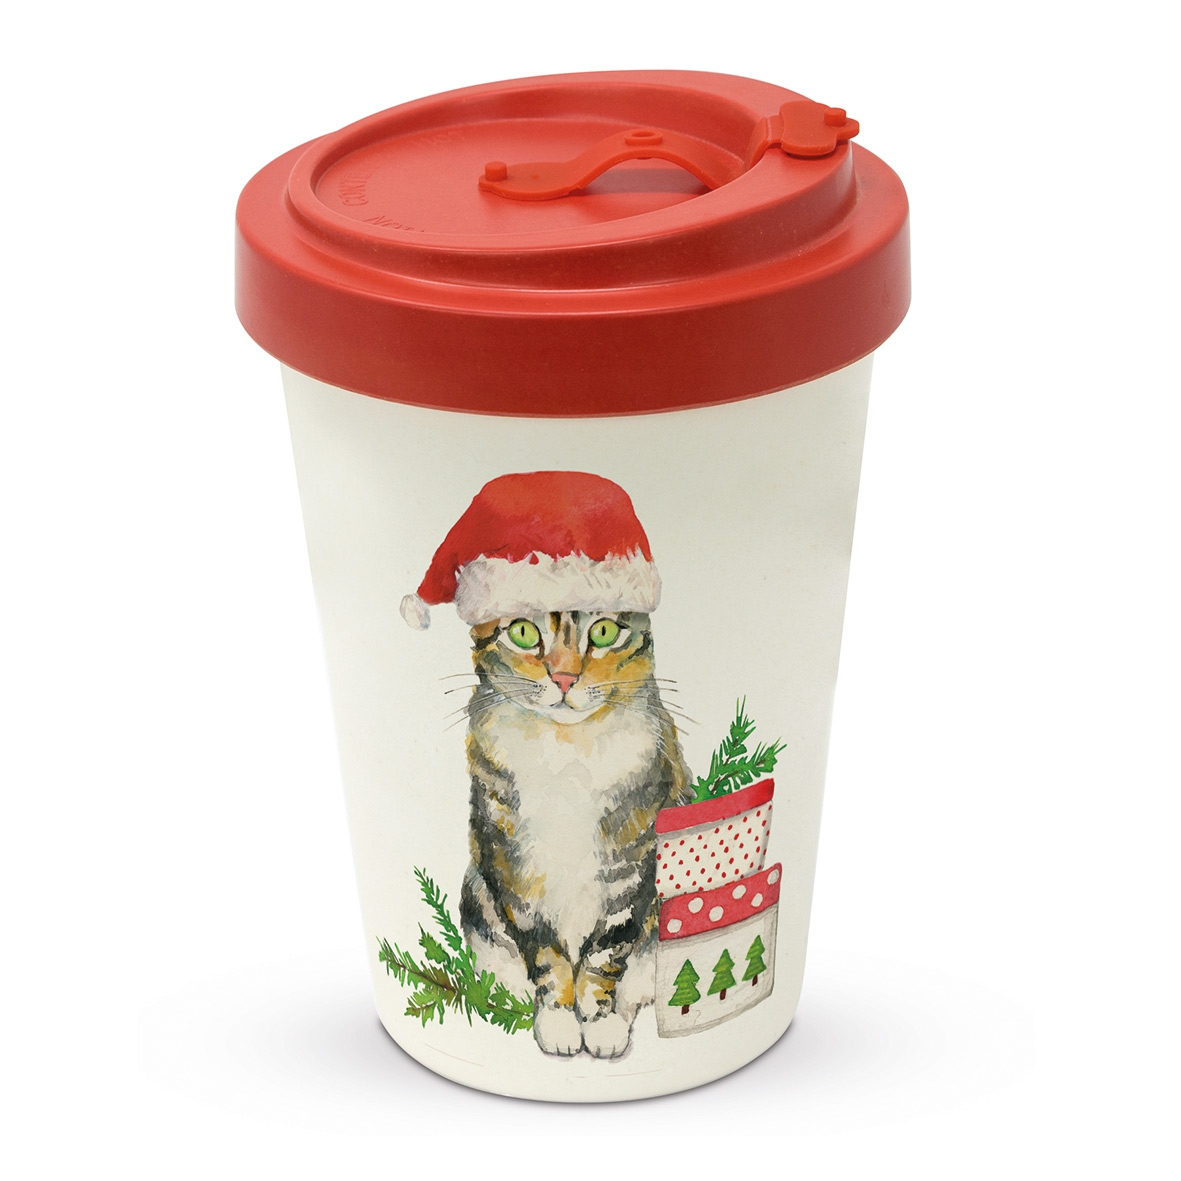 Bamboo mug To-Go - Christmas Kitty Travel Mug